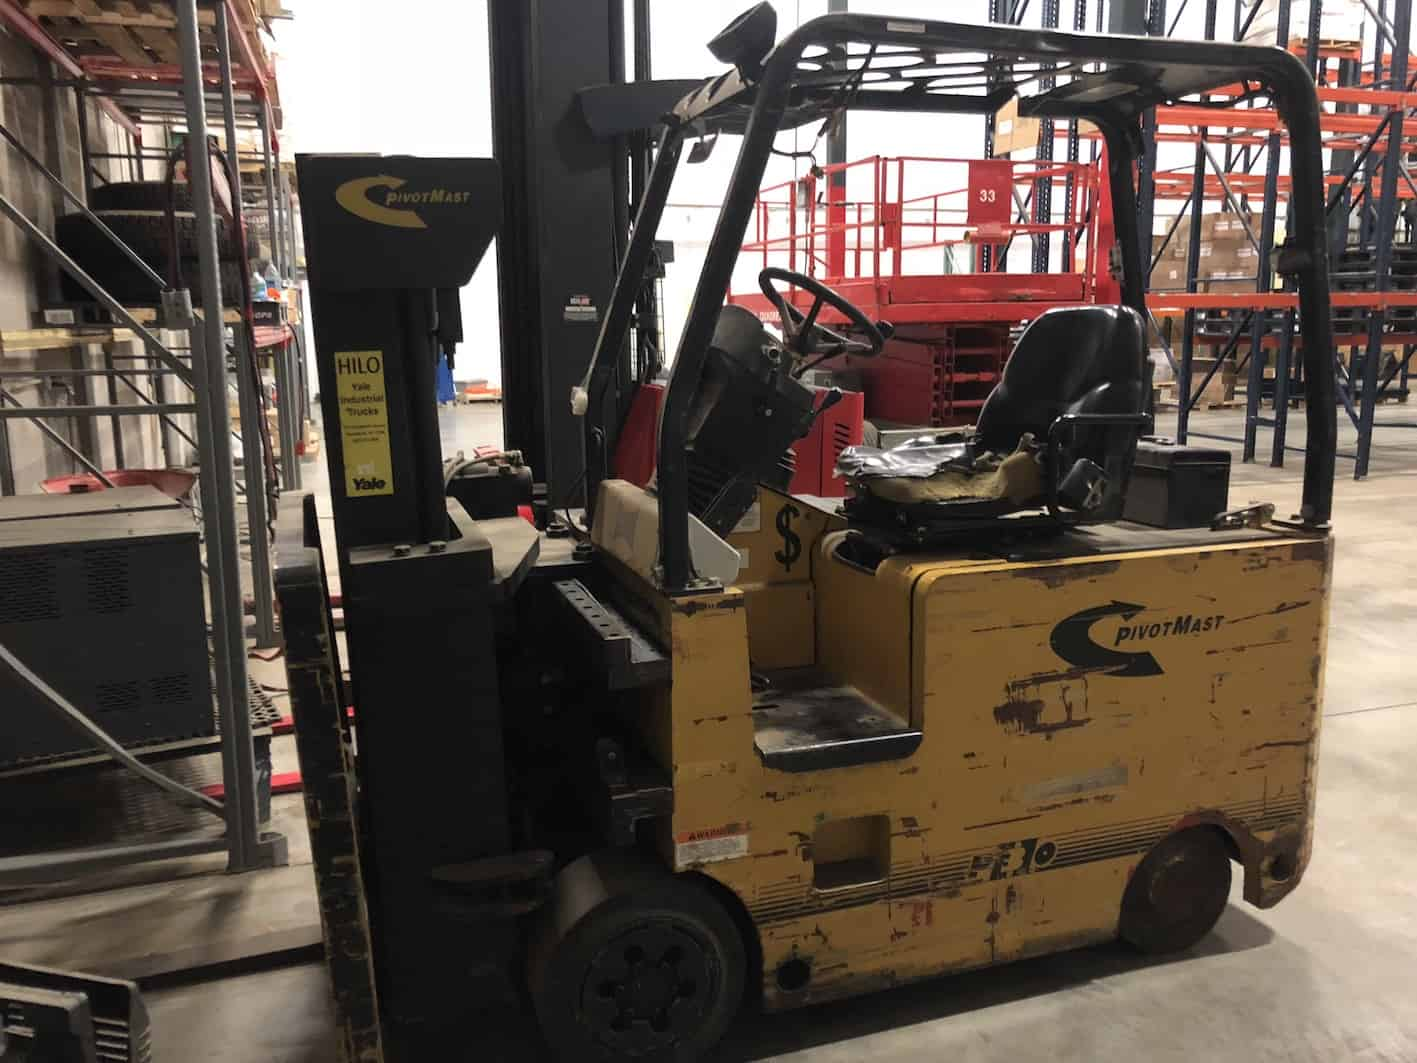 Yale Pivotmast forklift, three stage articulating mast